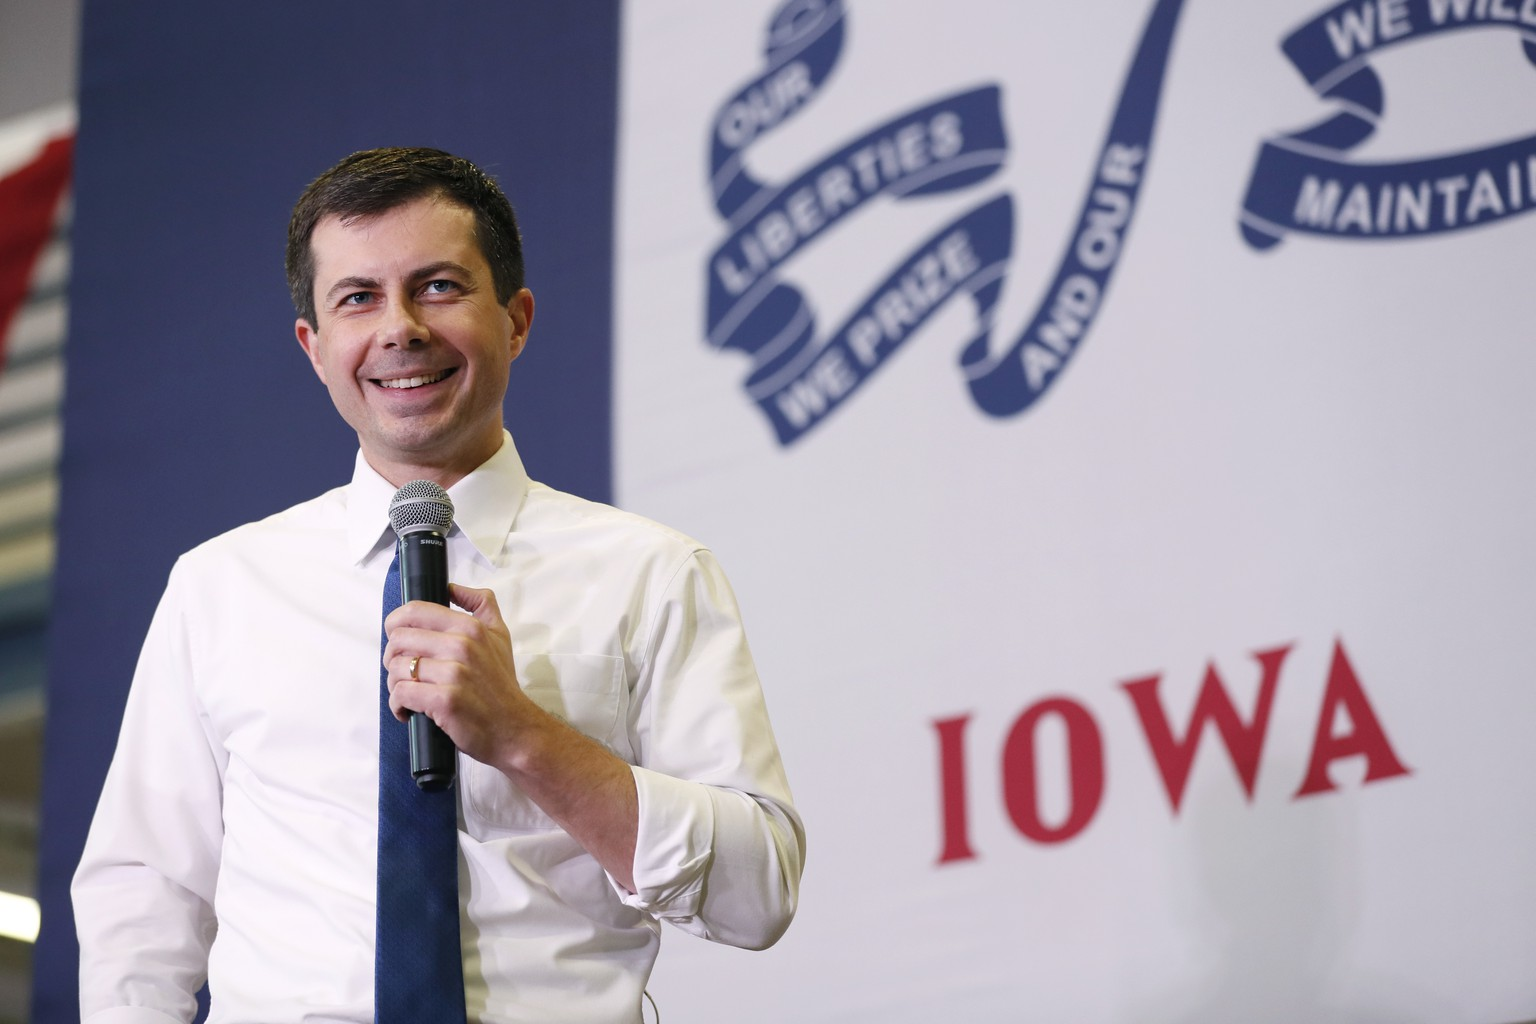 Democratic presidential candidate South Bend, Ind., Mayor Pete Buttigieg speaks during a town hall meeting, Monday, Nov. 25, 2019, in Creston, Iowa. (AP Photo/Charlie Neibergall) Pete Buttigieg